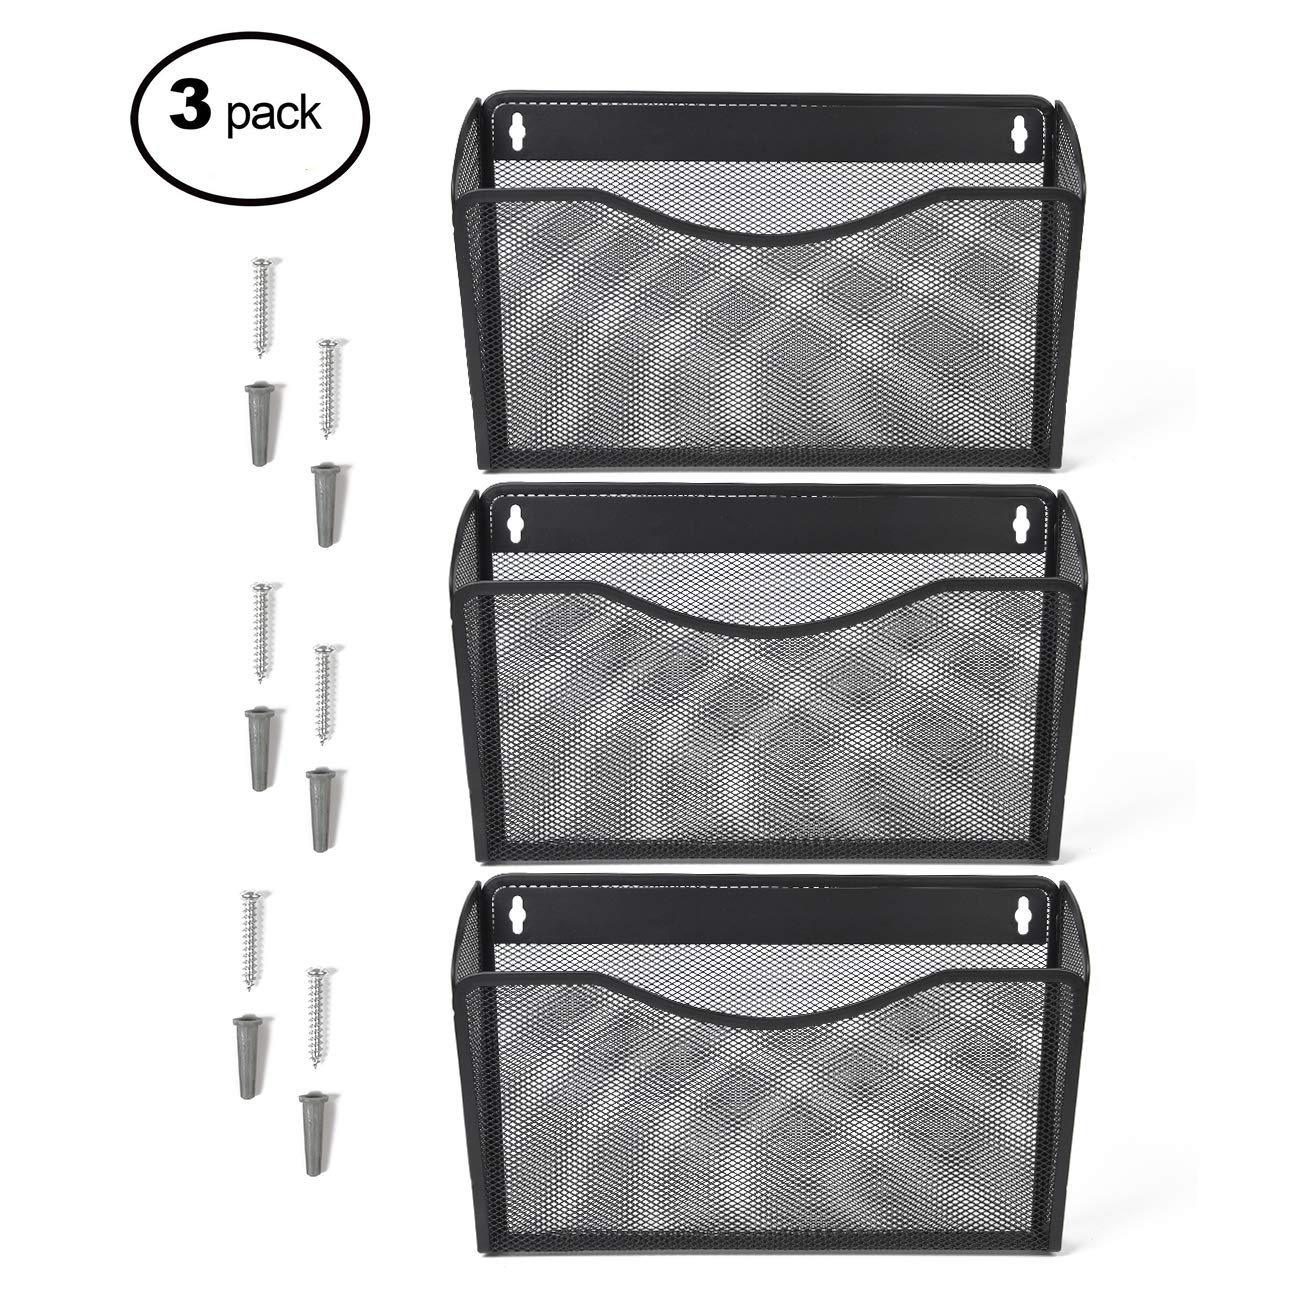 Kinwell 3 Pack Office Hanging Mesh Letter-Size Wall File Holder Organizer Single Vertical Collection Pocket Set Multi-Purpose Organizer Display Magazines Mail Sorter & Magazine Rack (Black)